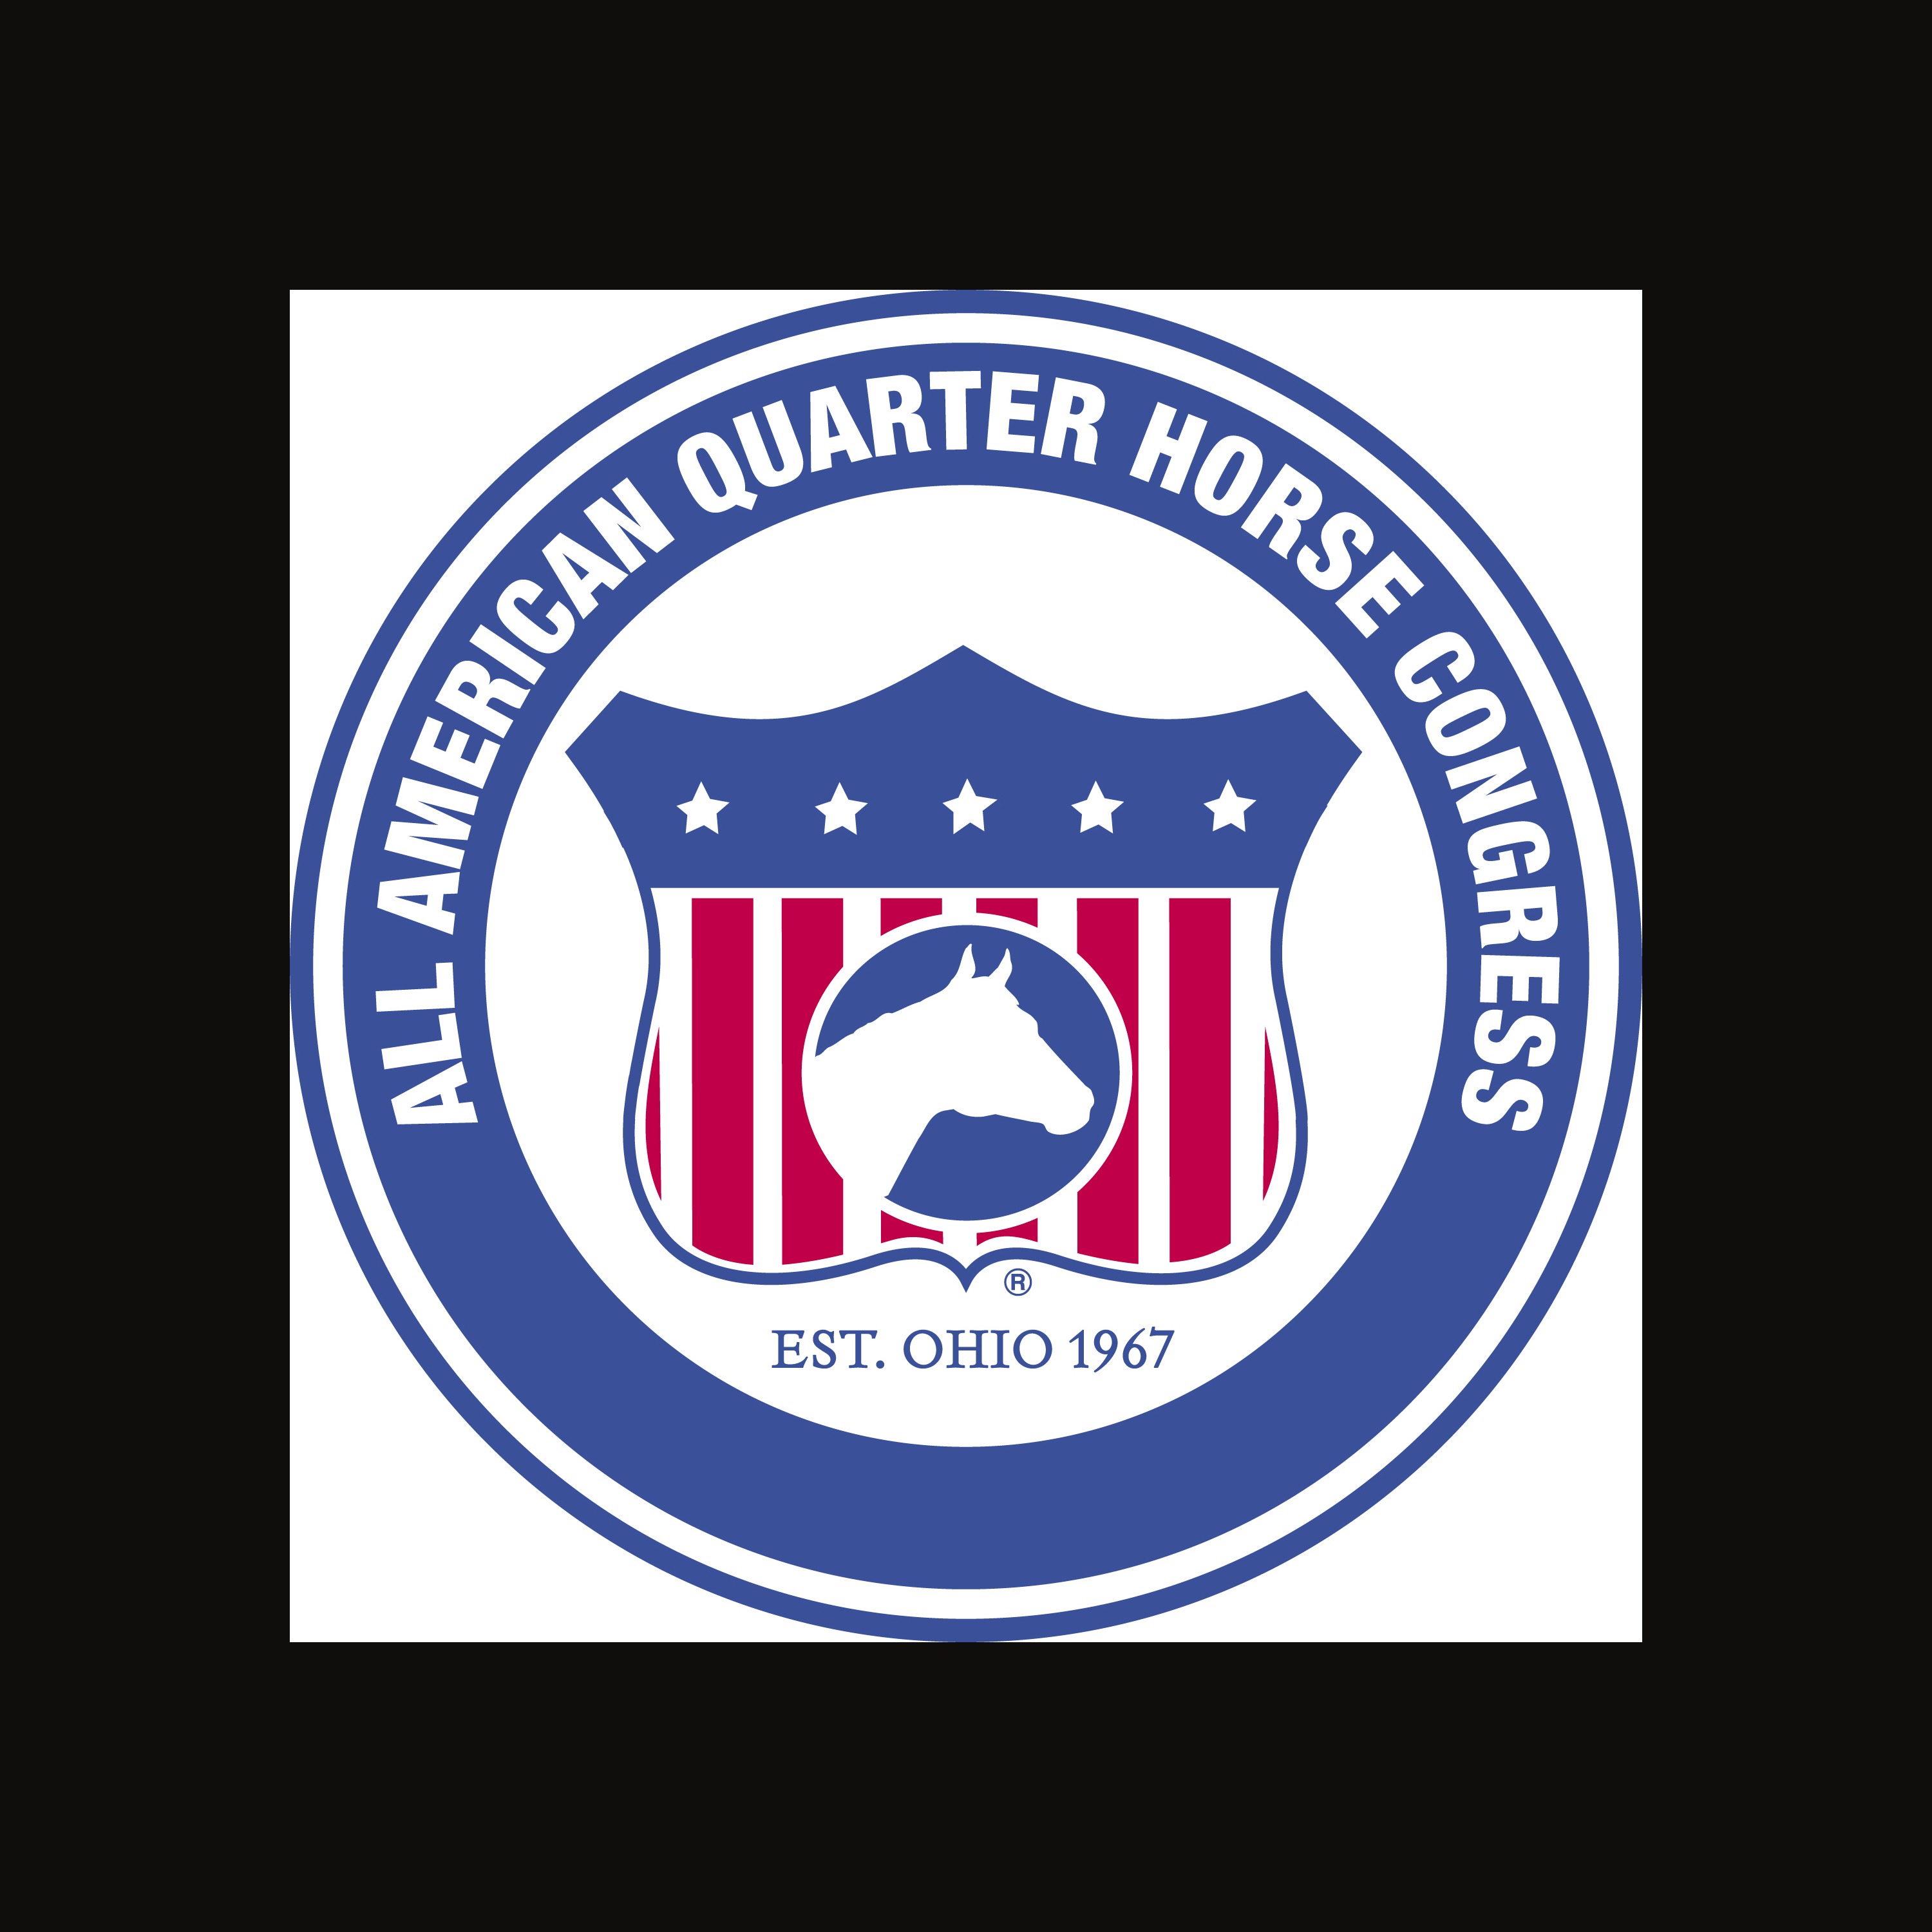 2013 ALL AMERICAN QUARTER HORSE CONGRESS